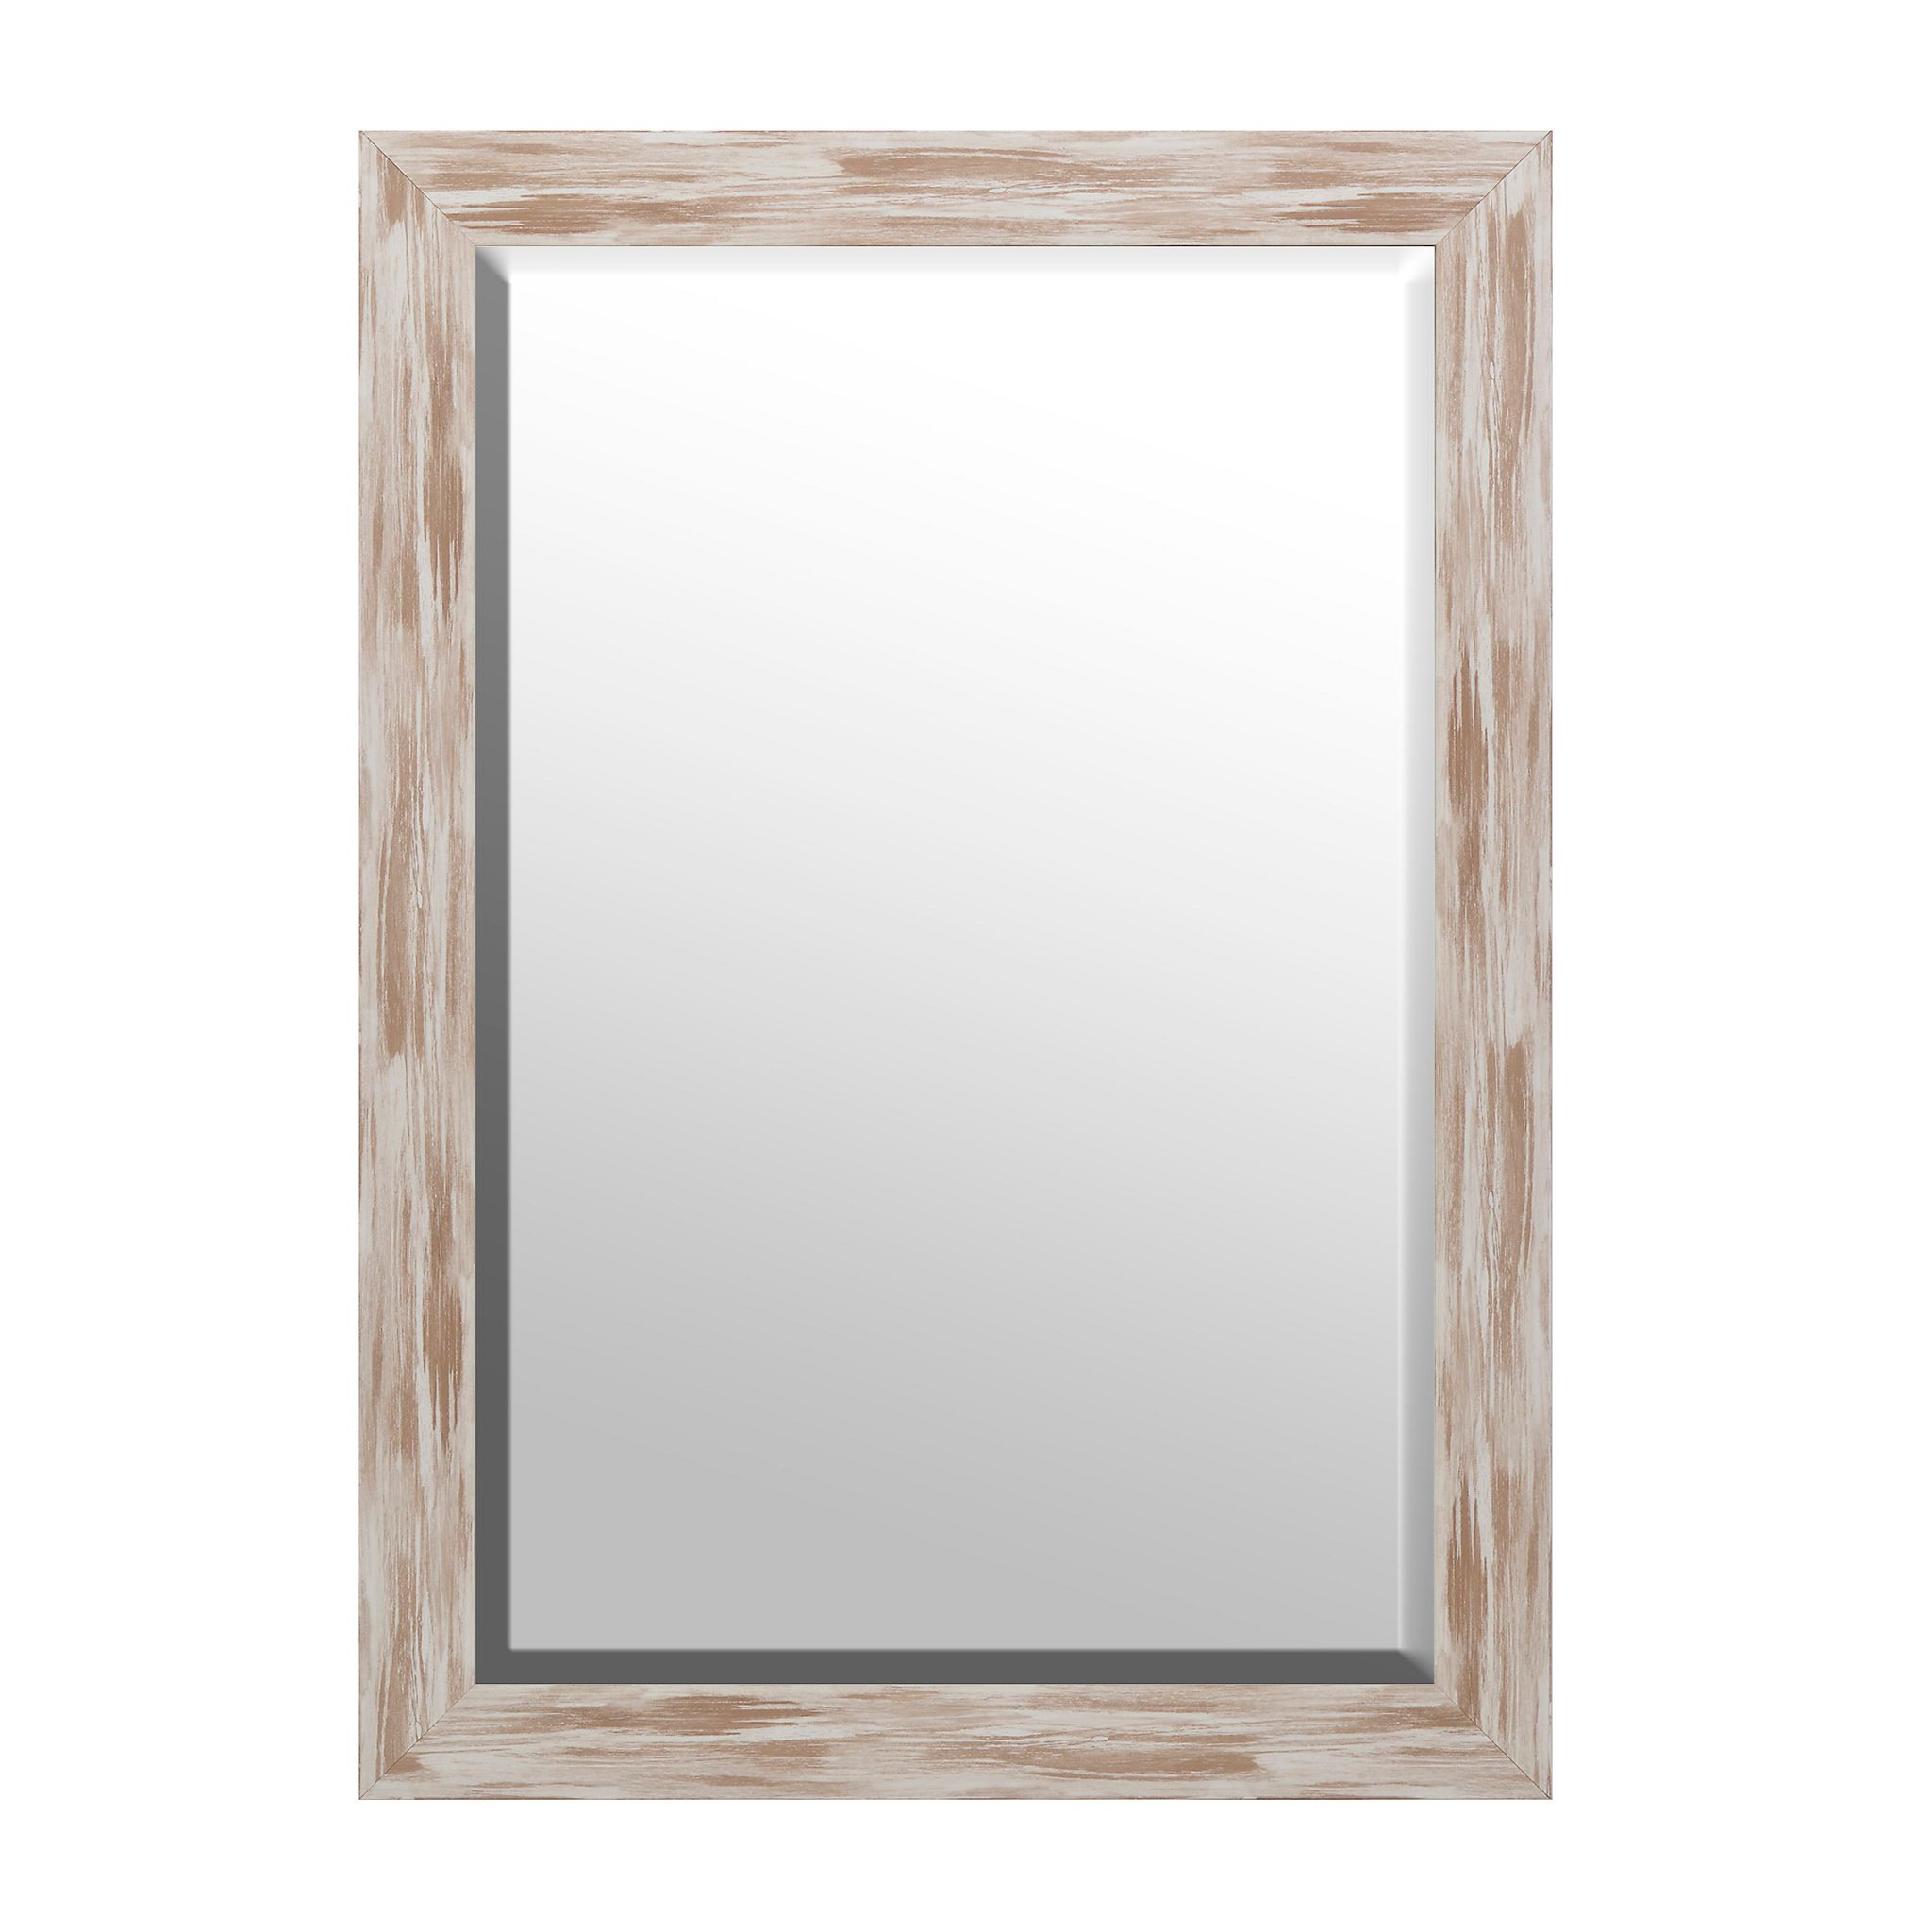 Distressed White Driftwood Framed Mirror 30x42 Driftwood Frame White Mirror Frame Mirror Frames